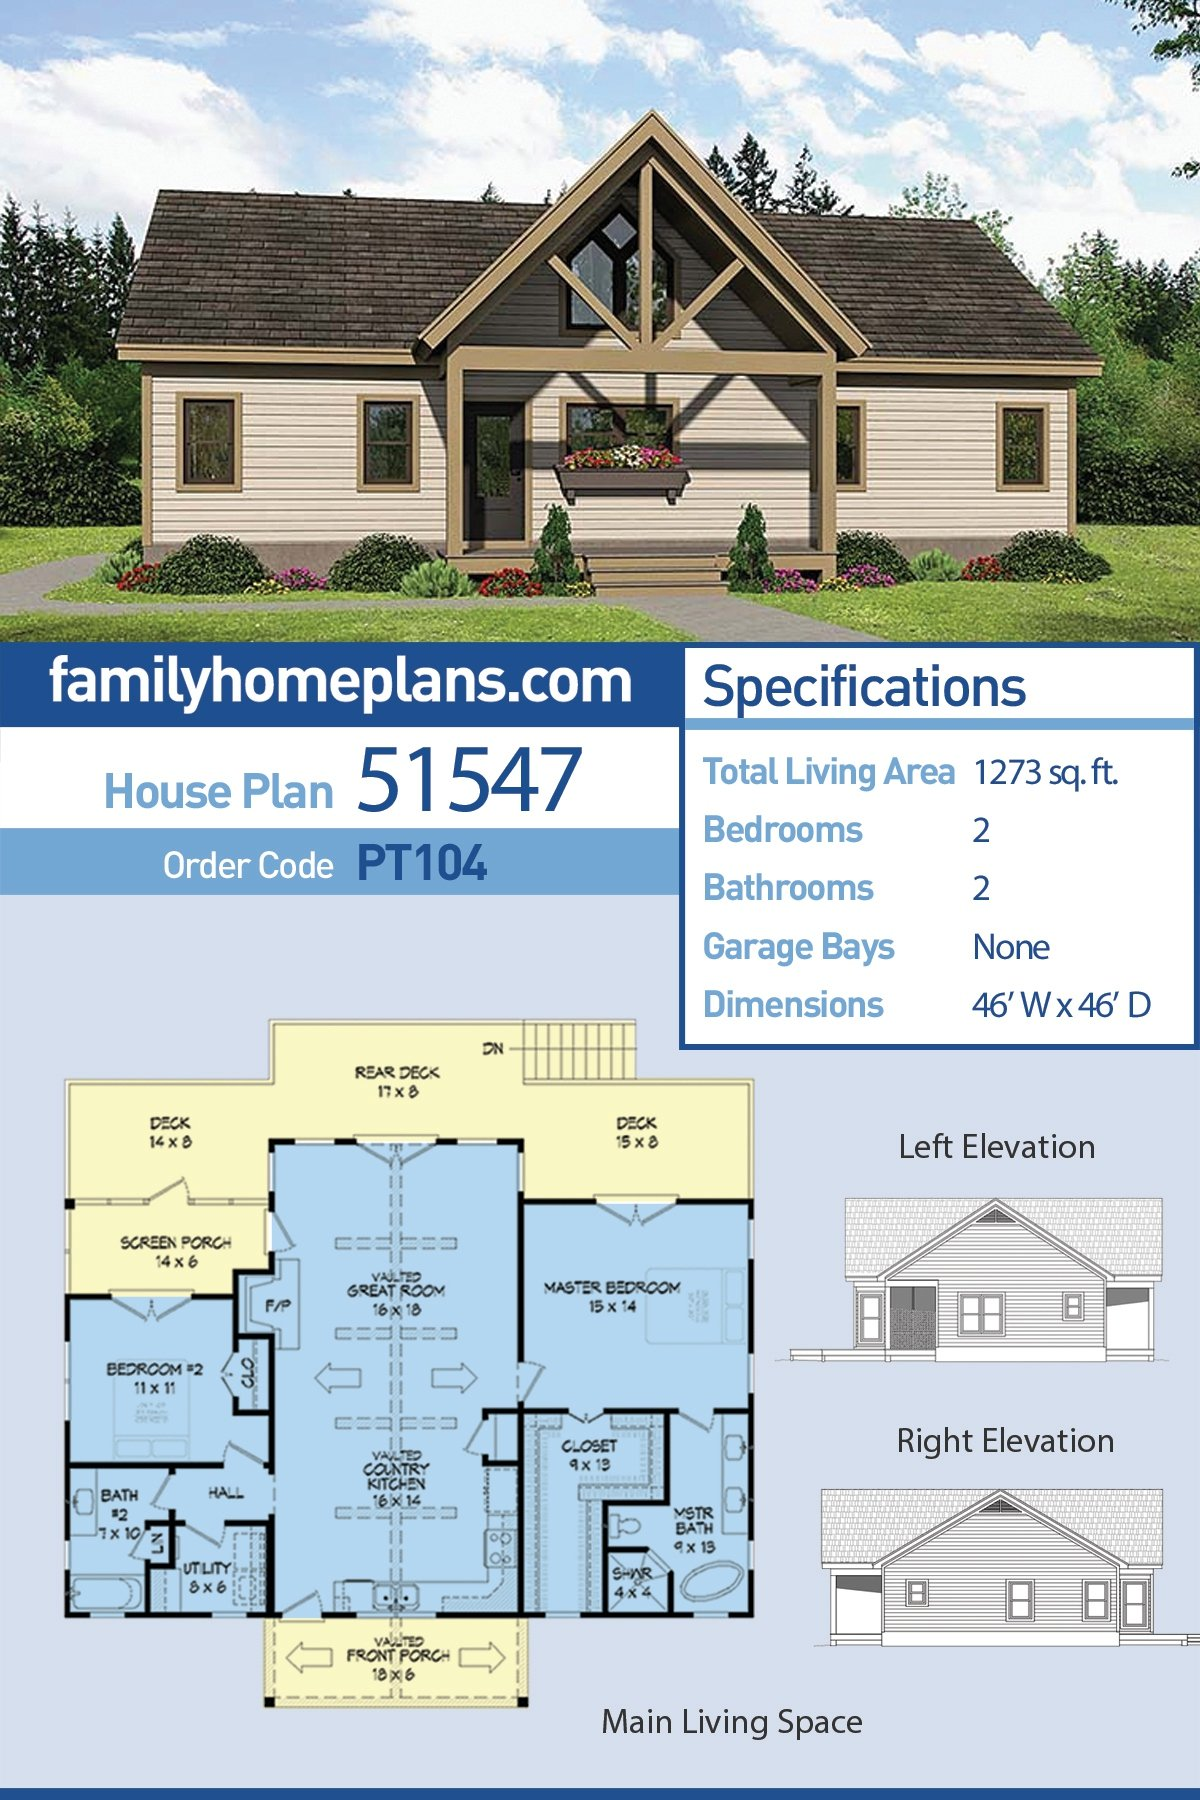 Cabin, Contemporary, Southern, Traditional House Plan 51547 with 2 Beds, 2 Baths